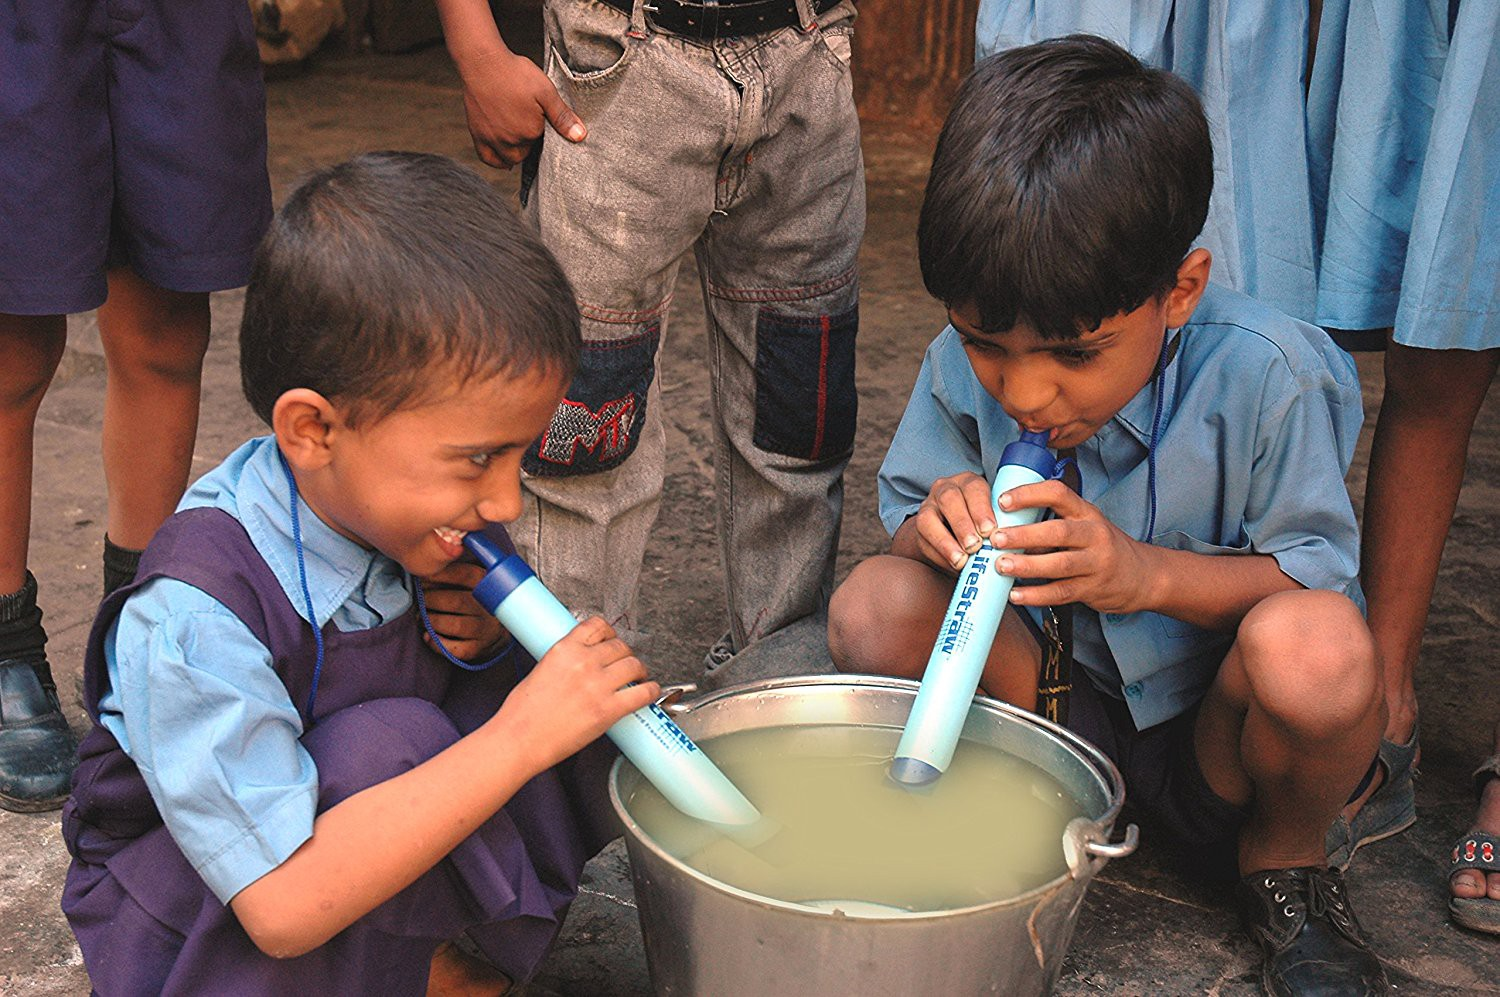 Green Job Sector: Appropriate Design The LifeStraw